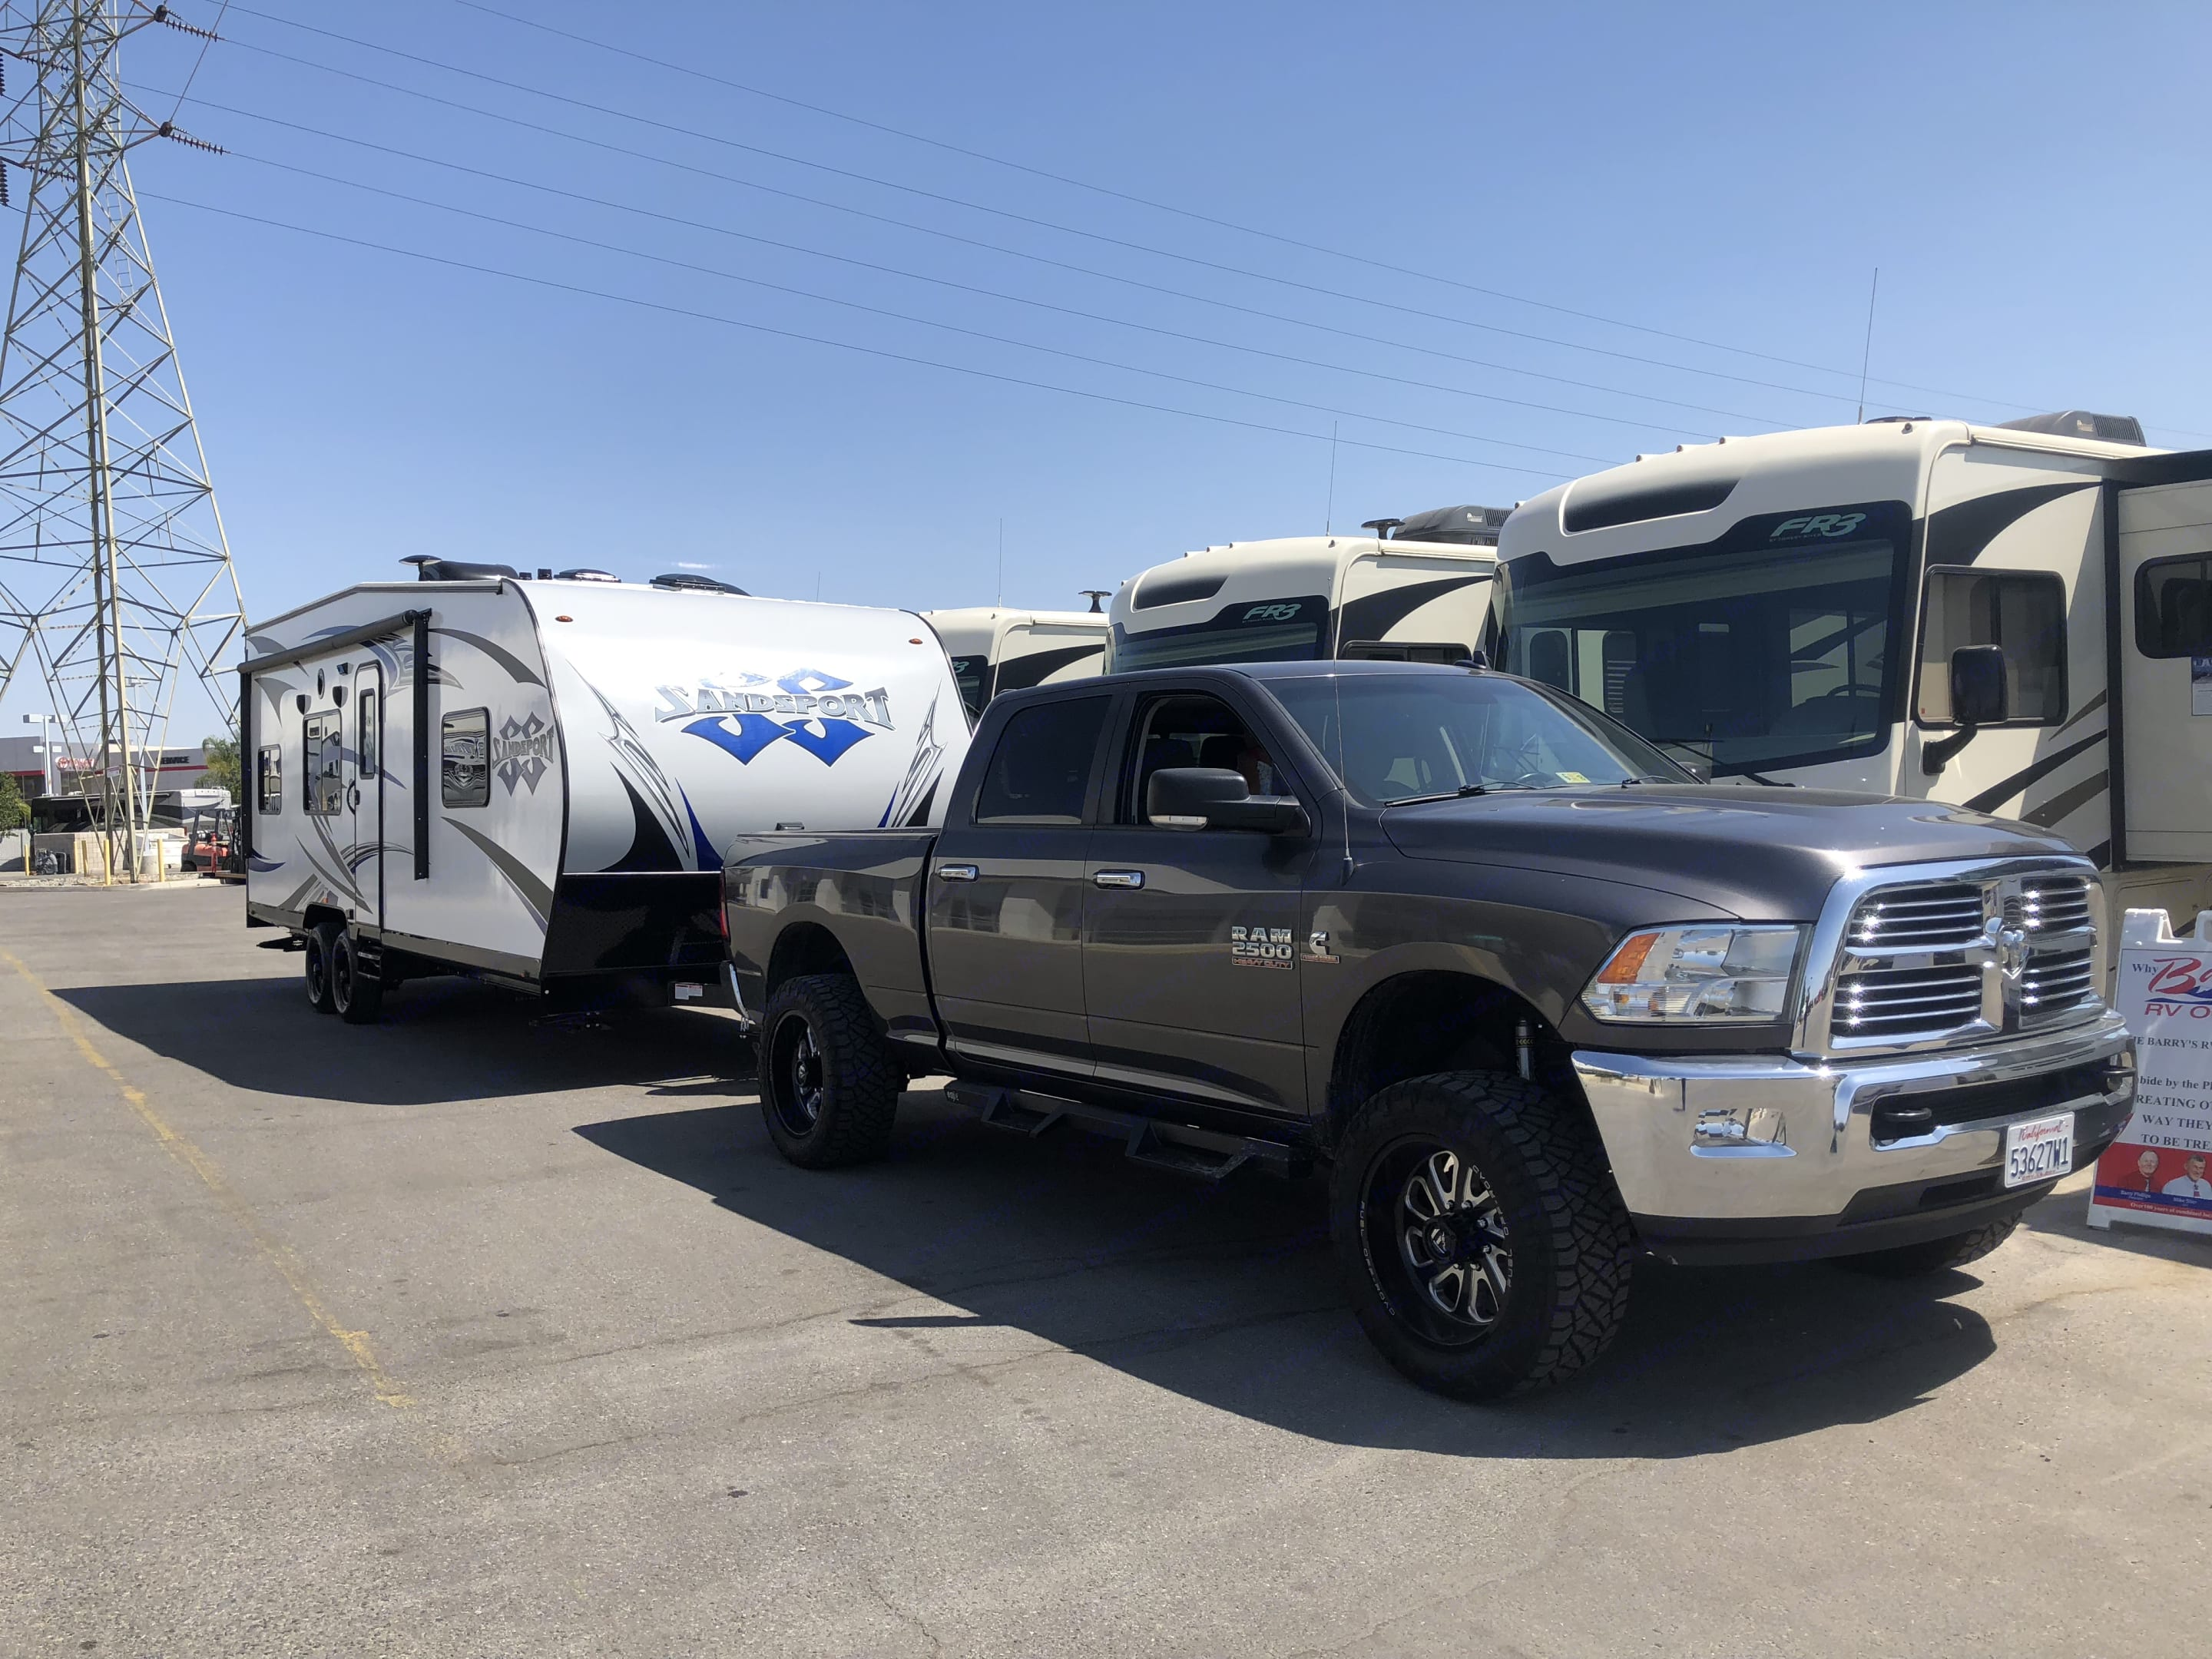 Pulls very nice with anti sway bar and husky tow kit. Pacific Coachworks Sandsport 2019